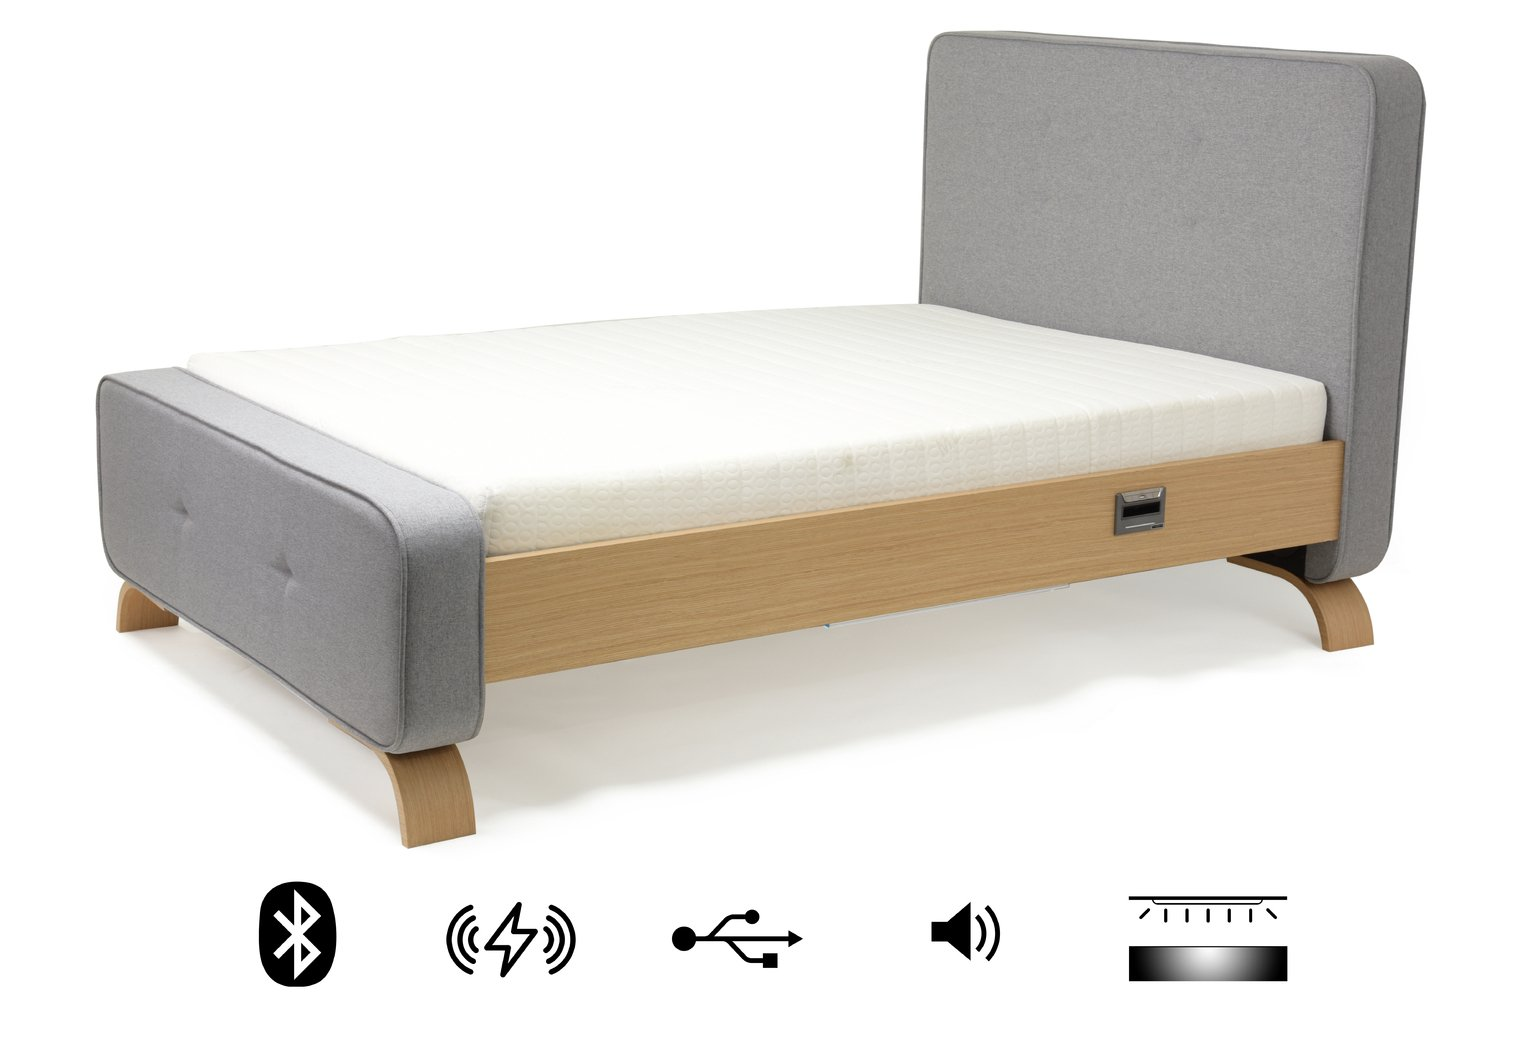 Koble Sove wireless charging Bluetooth Double Bed Frame